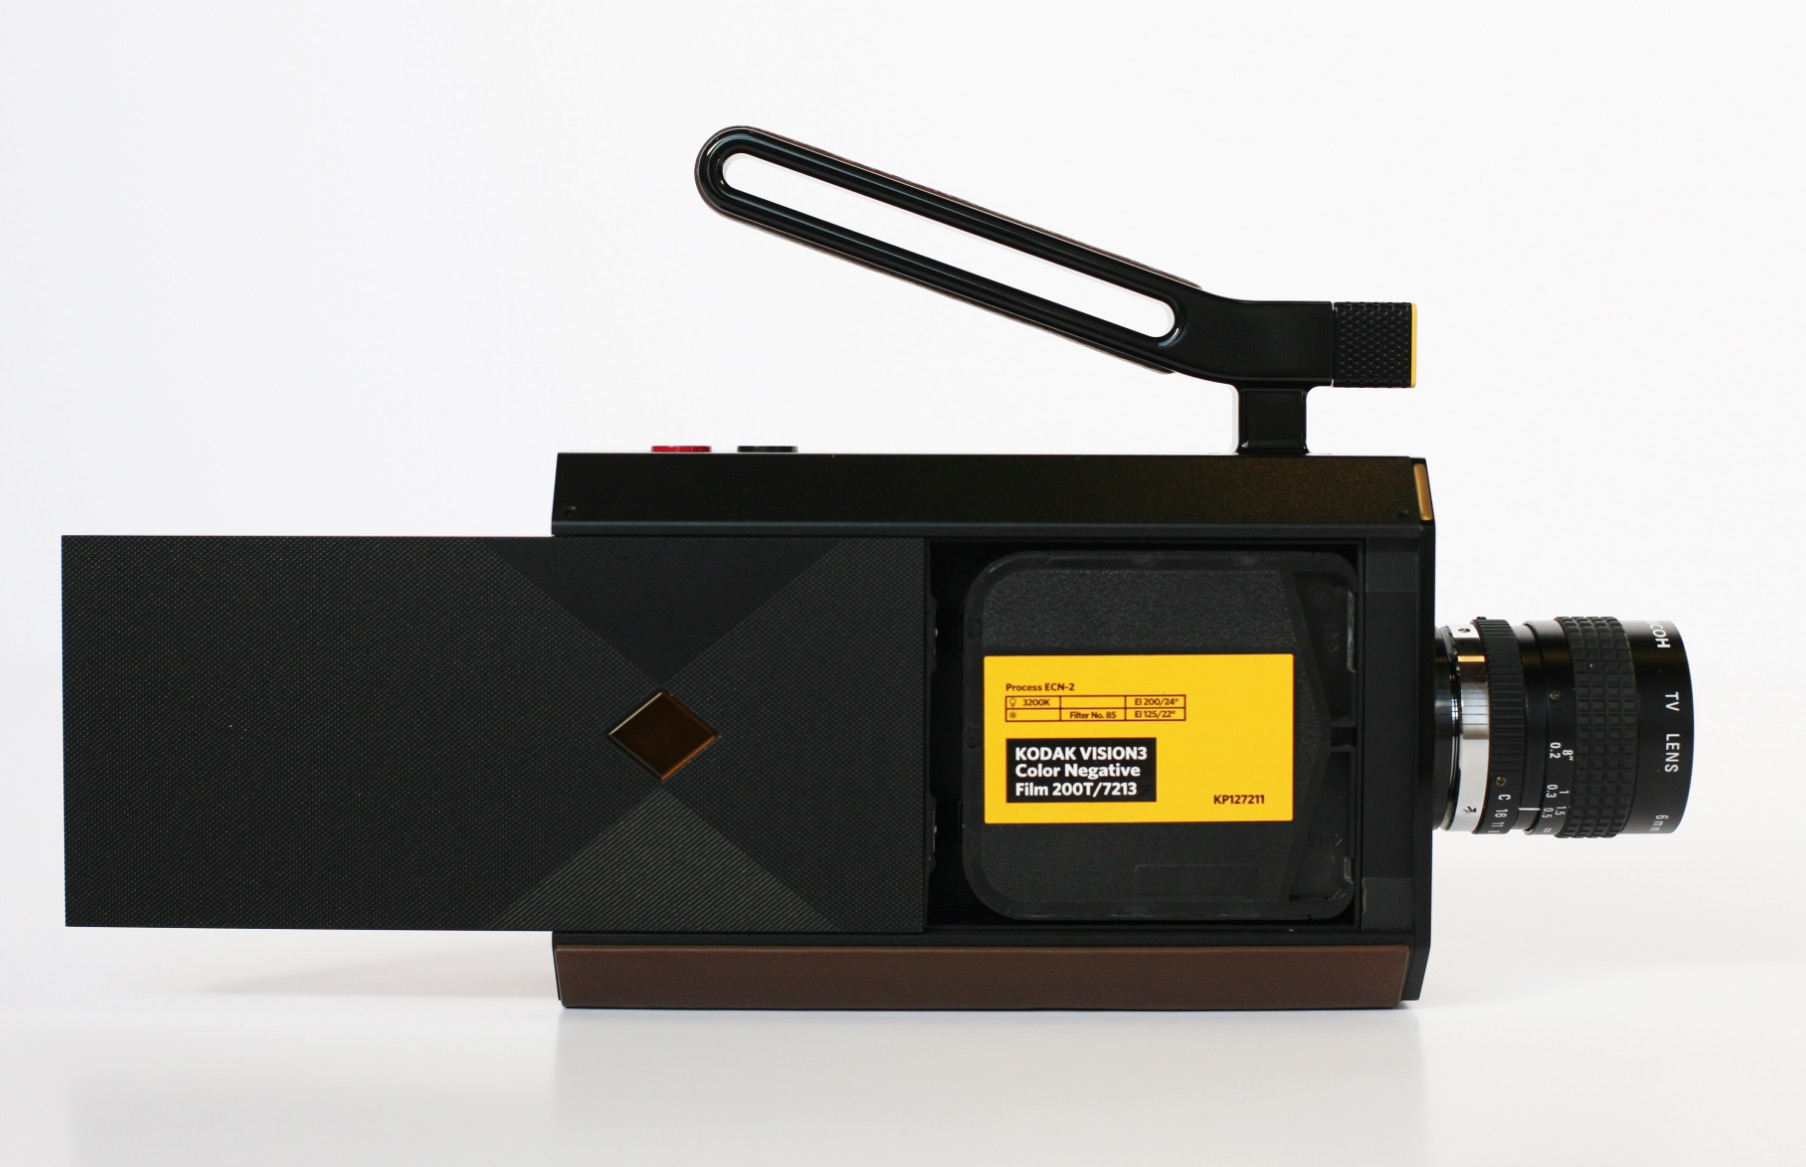 kodak super 8 camera 05